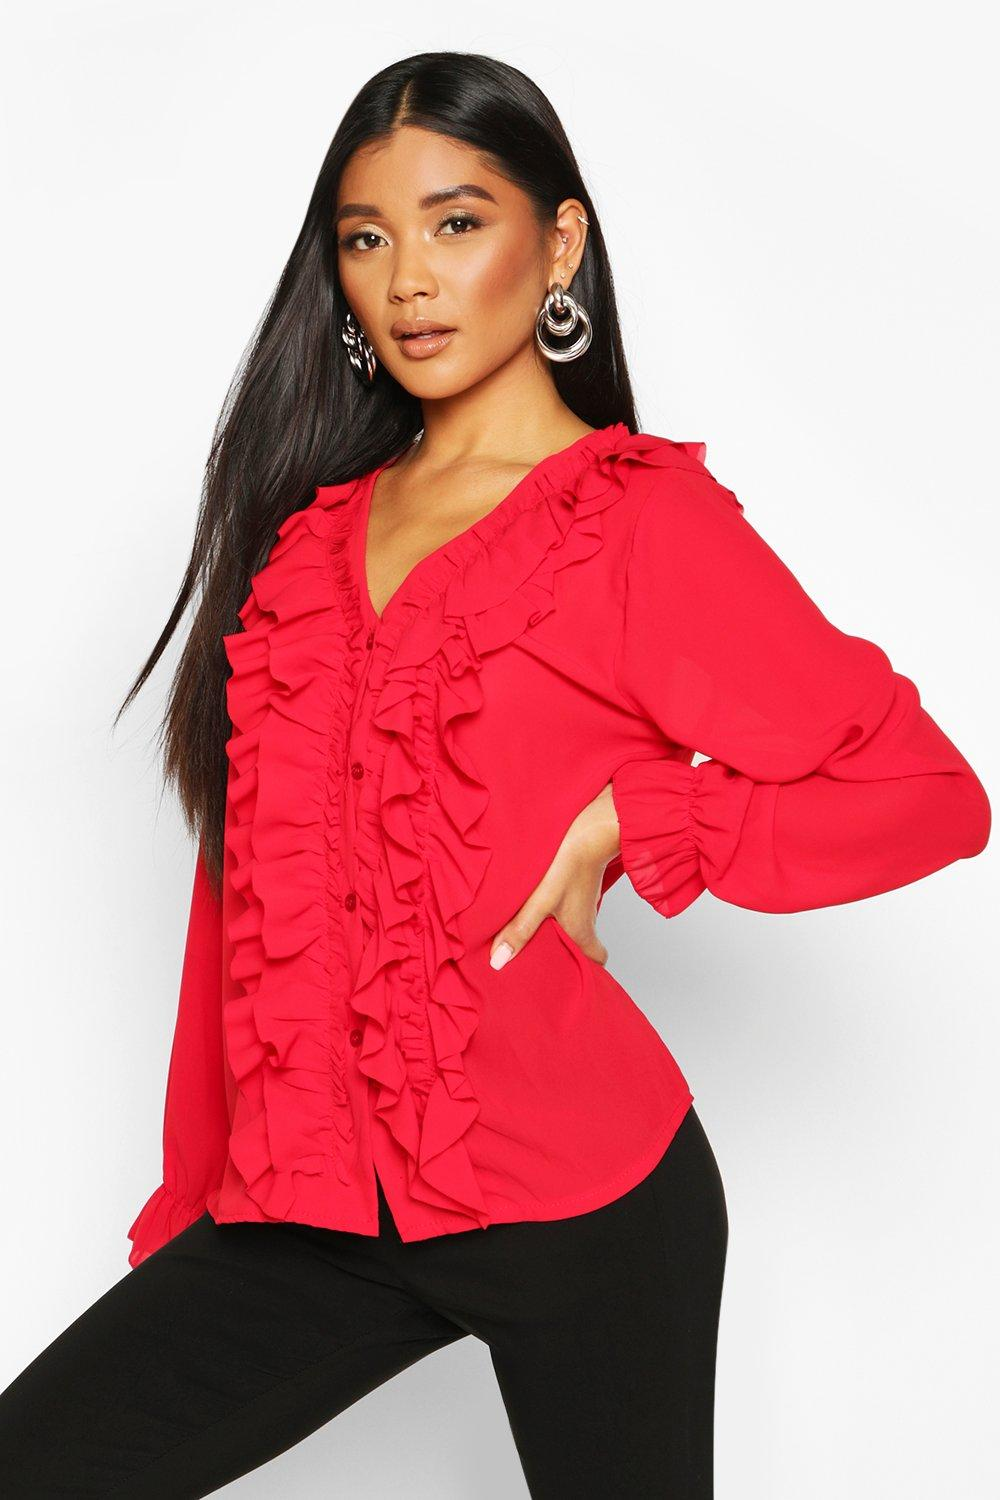 Womens Ruffle Woven Blouse - red - S, Red - Boohoo.com